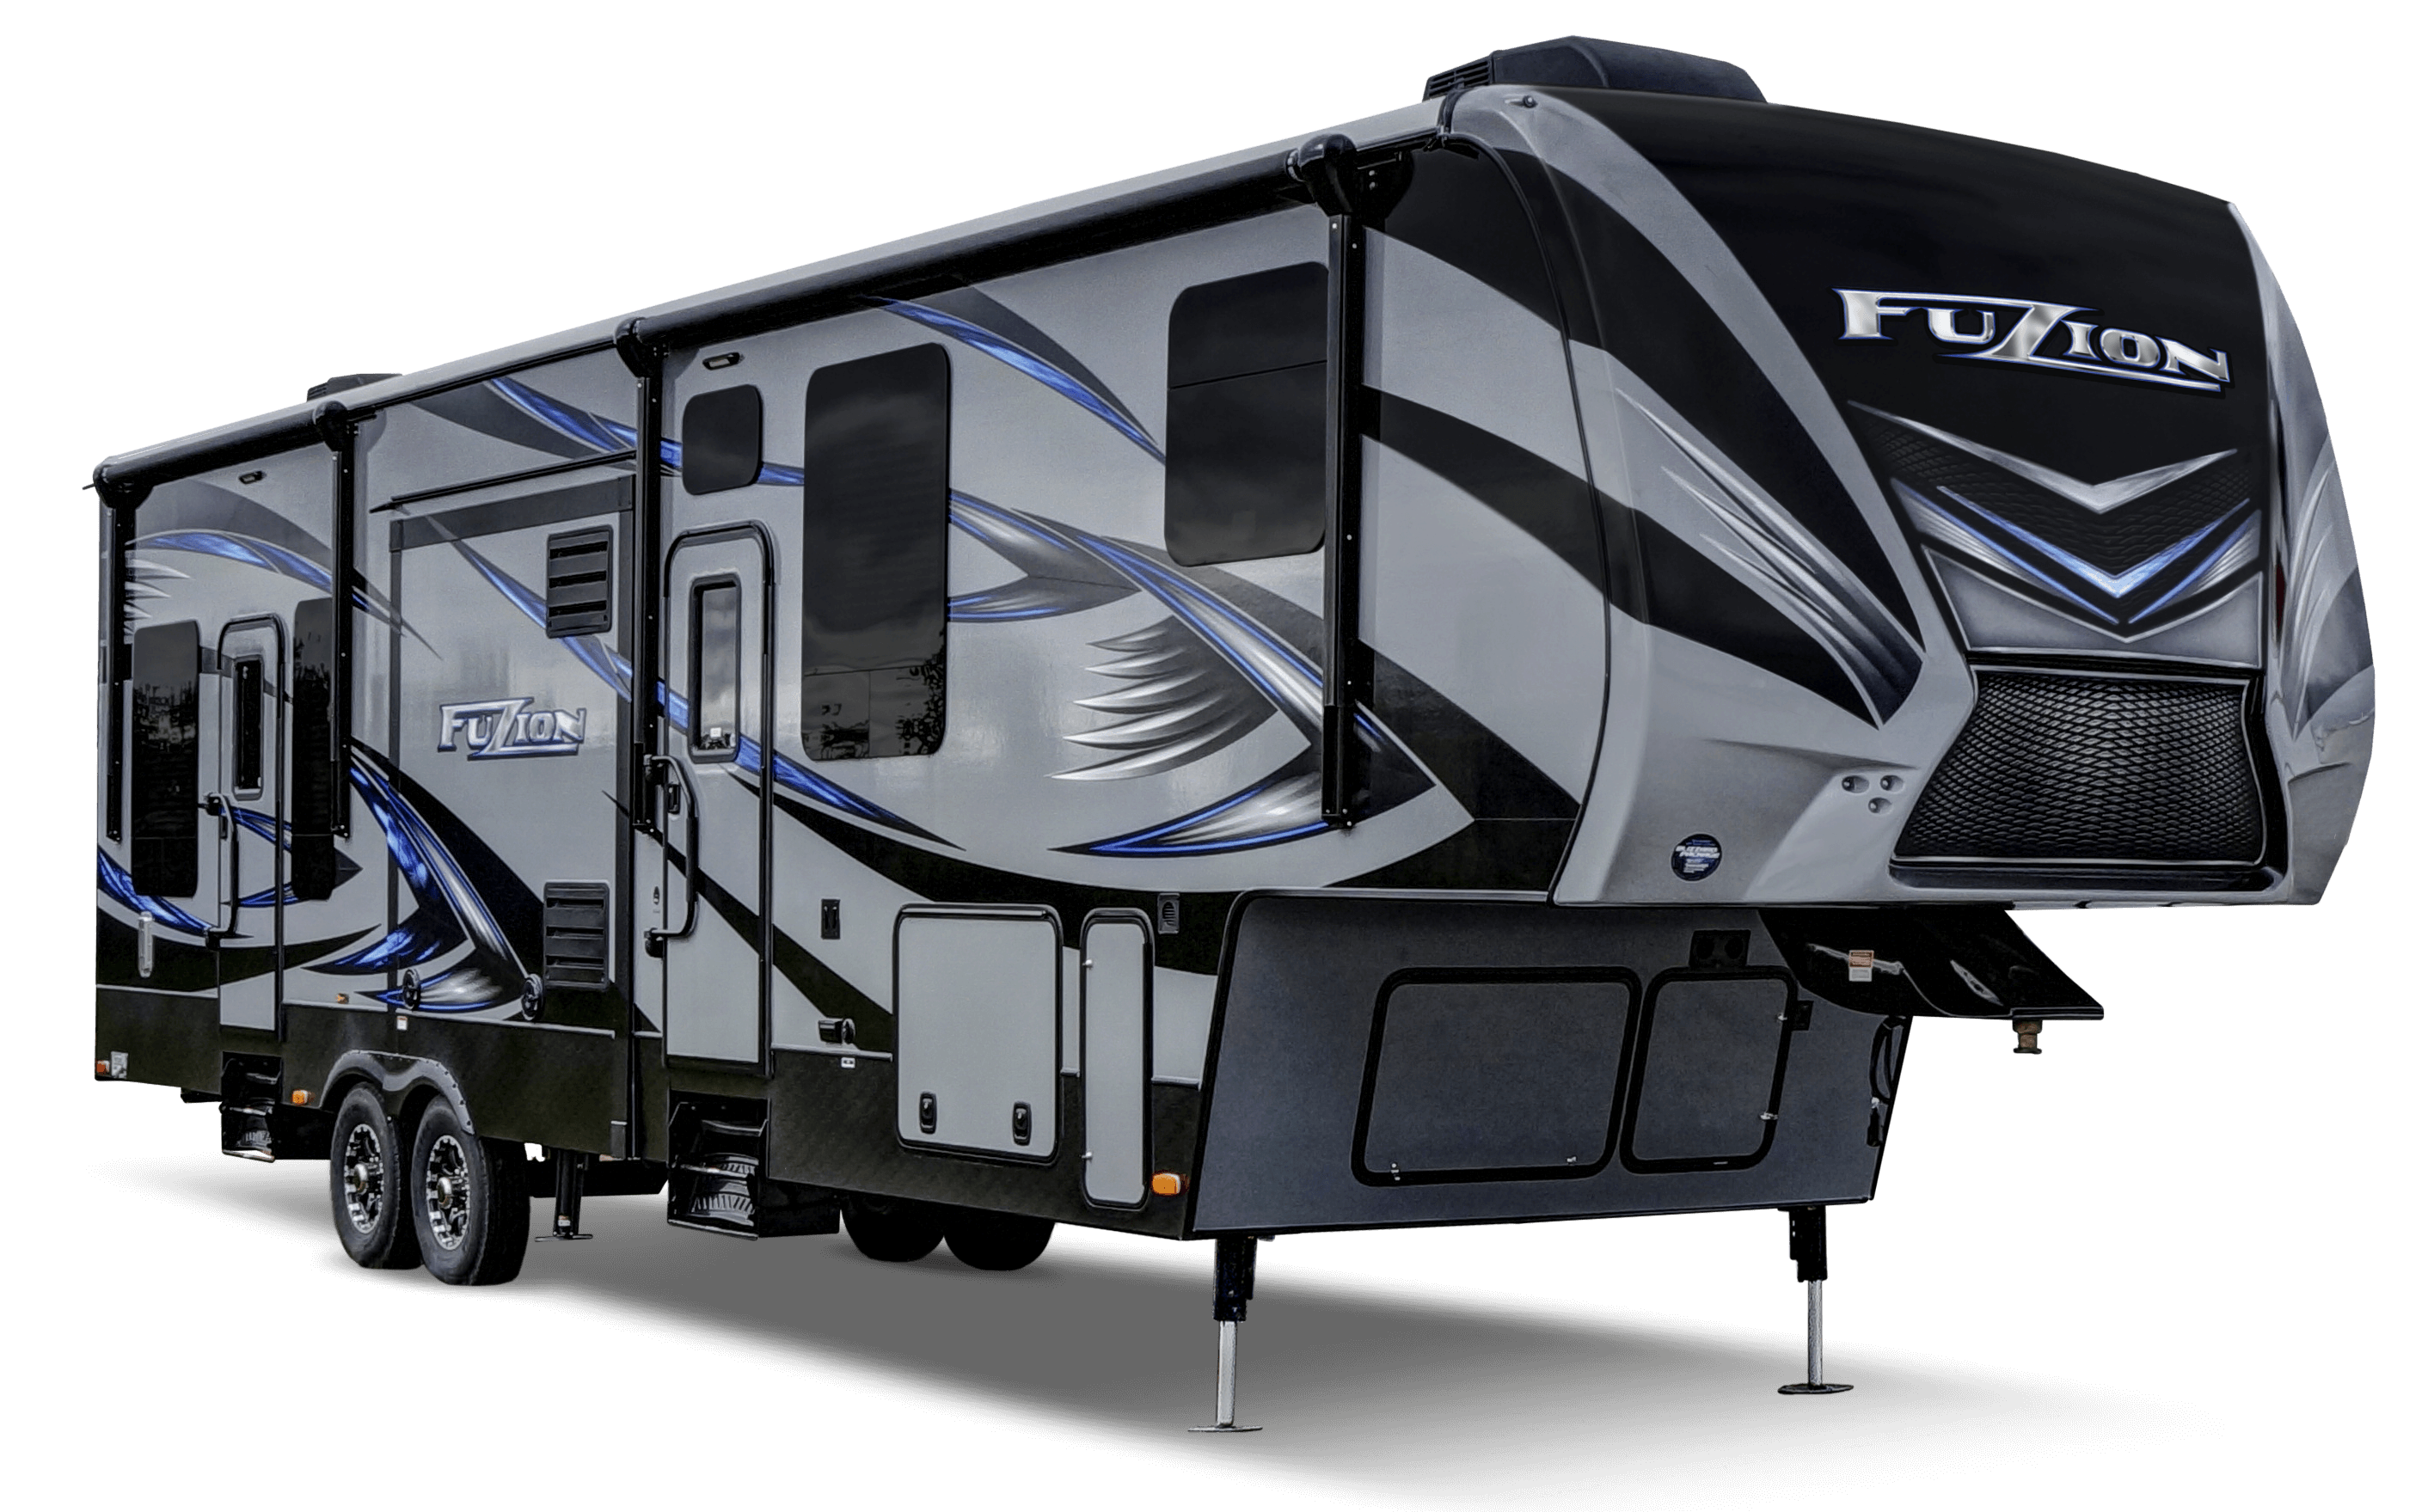 Keystone RV Fuzion Toy Hauler Fifth Wheels